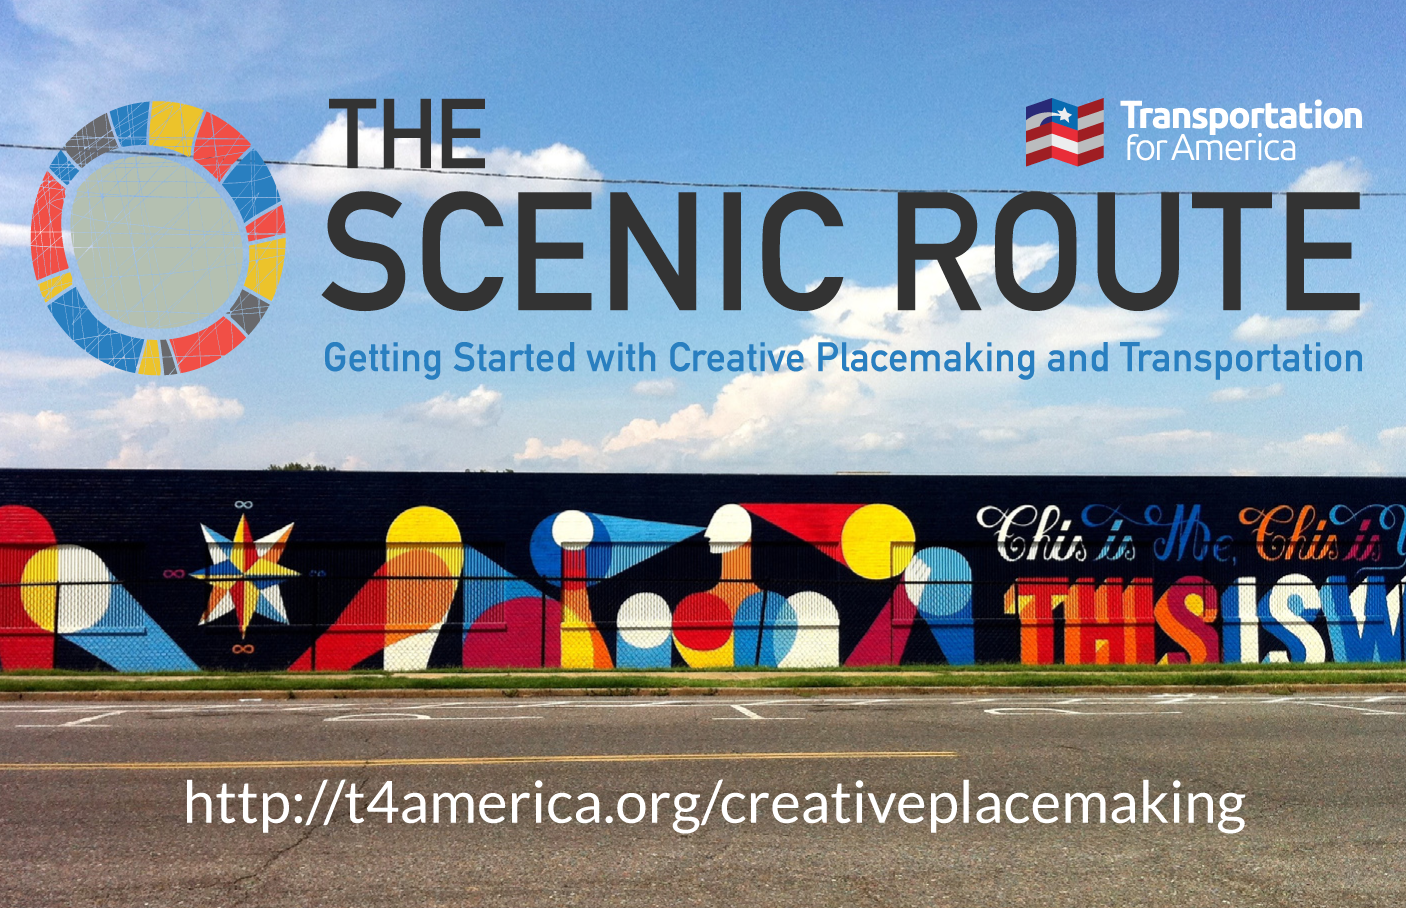 A guide to creative placemaking in transportation